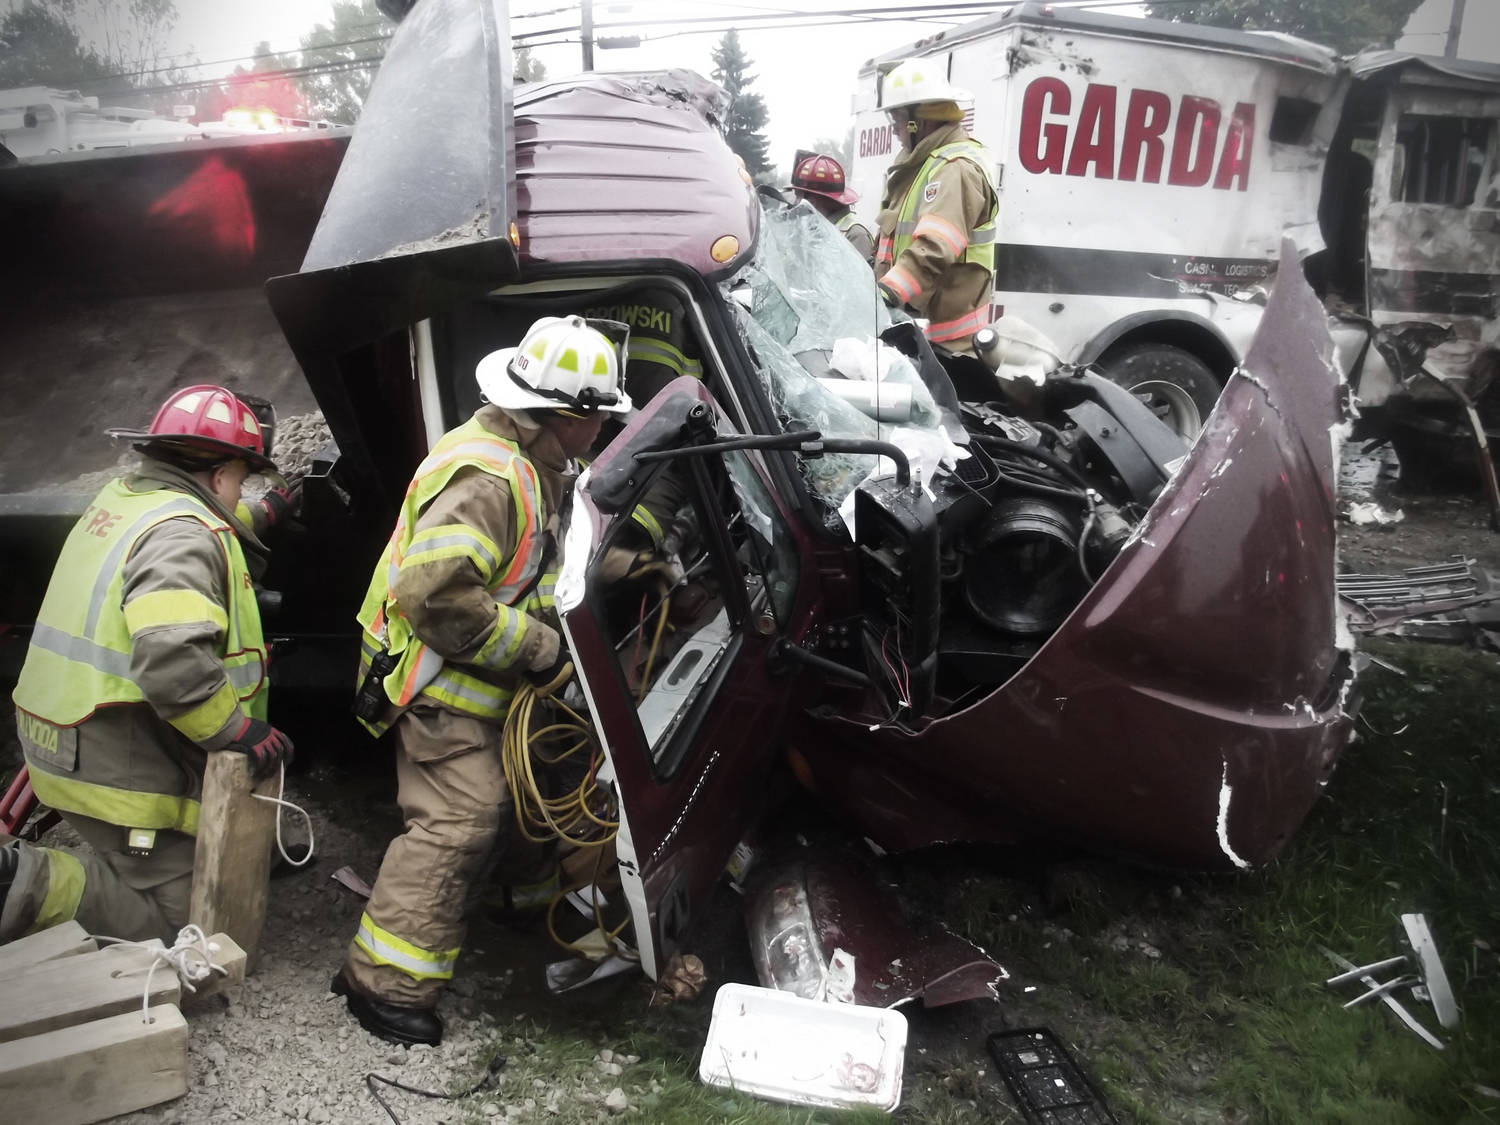 Firefighters working at the scene of a terrible wreck to extract a victim from the cab of a mangled truck.